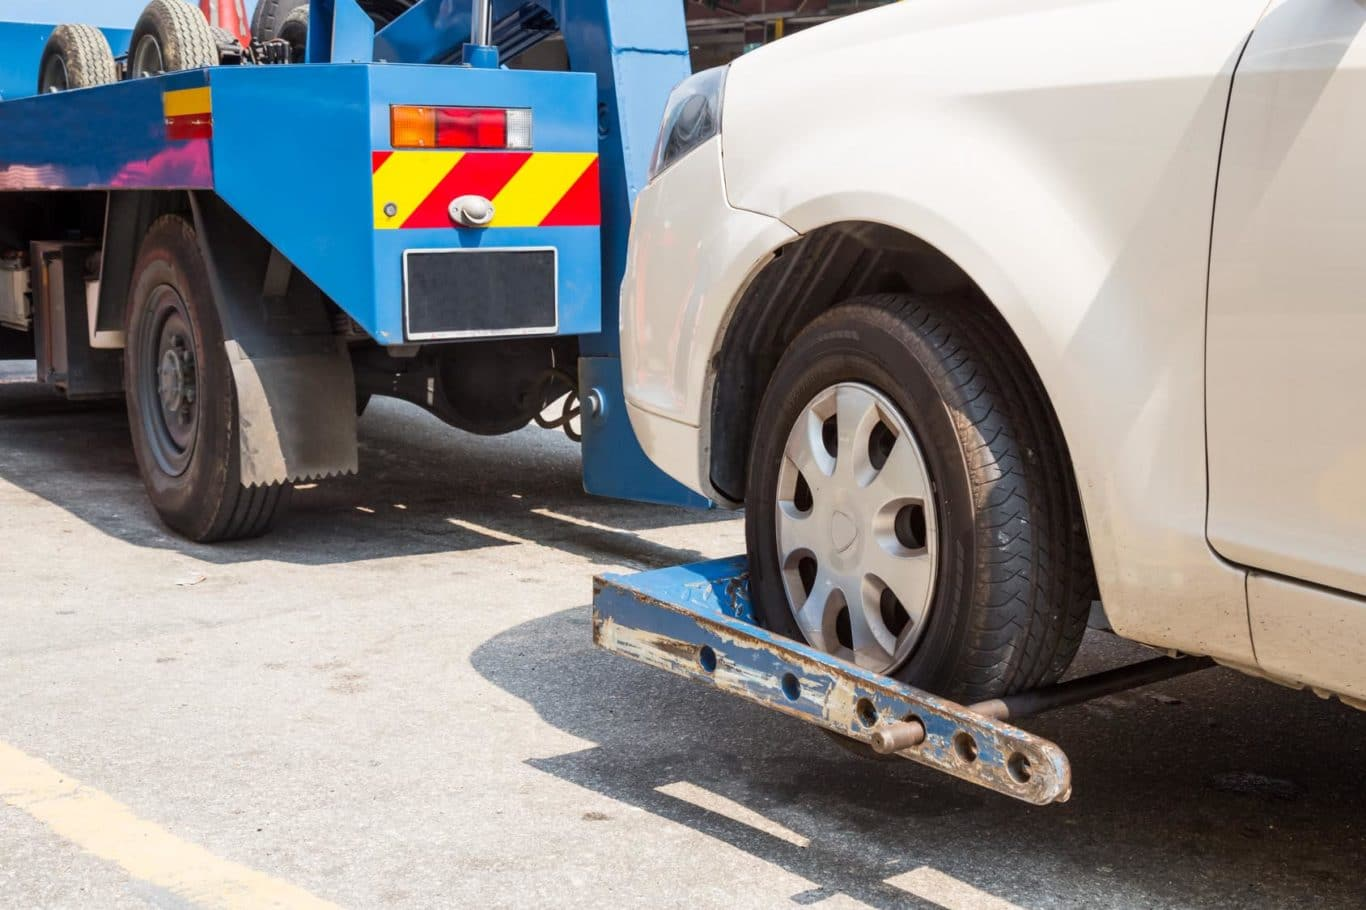 Dublin 6W (D6W) Dublin, South Dublin expert Towing And Recovery Dublin services